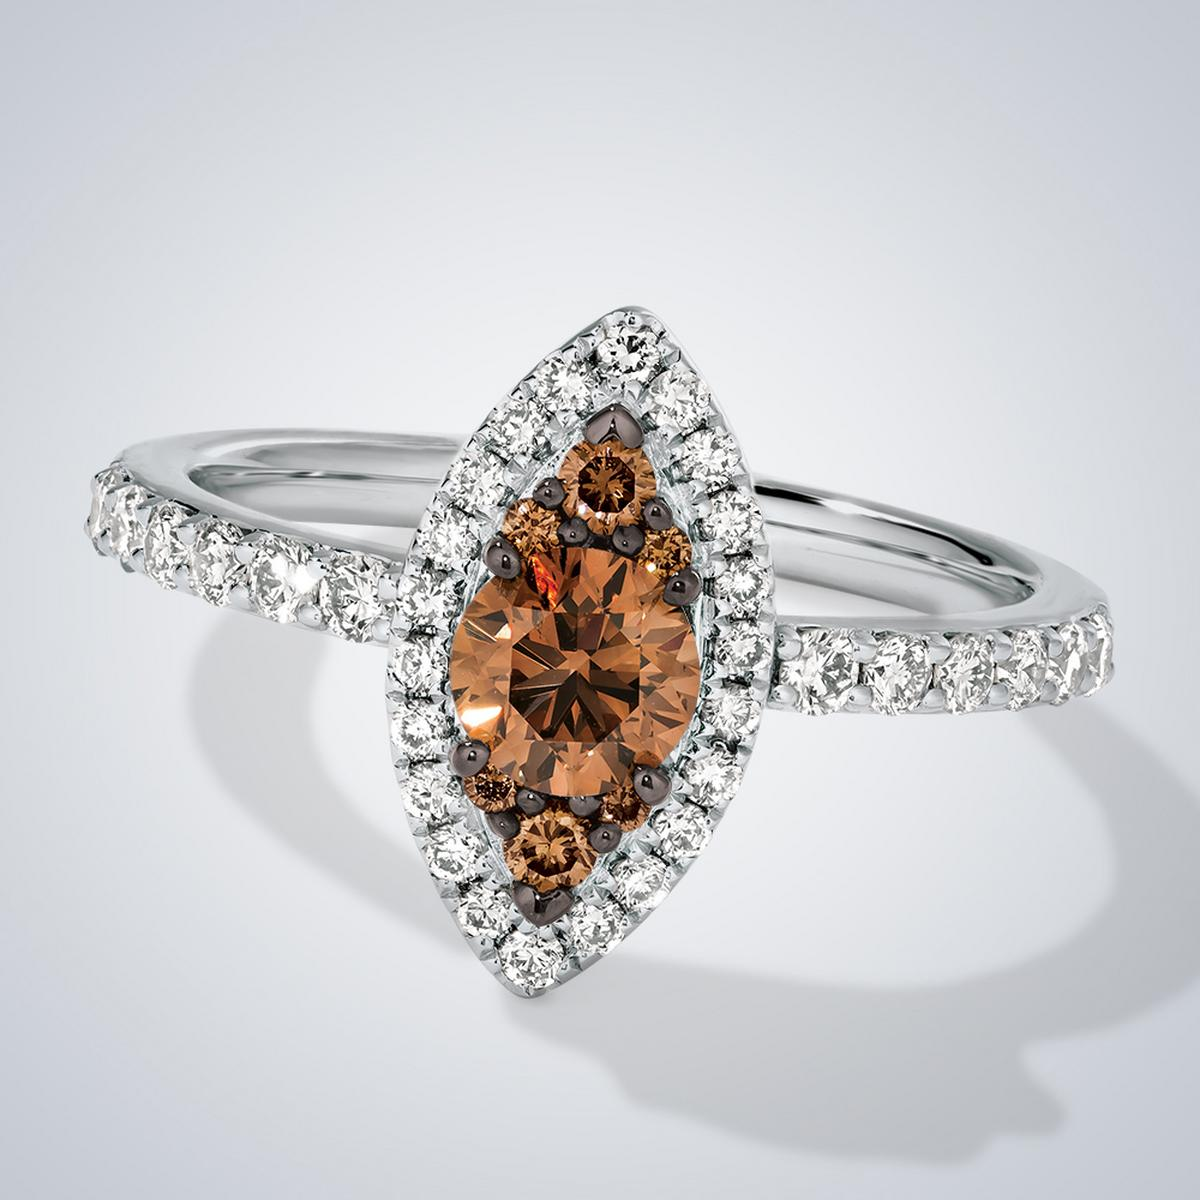 Pear shape Chocolate and Silver Le Vian ring